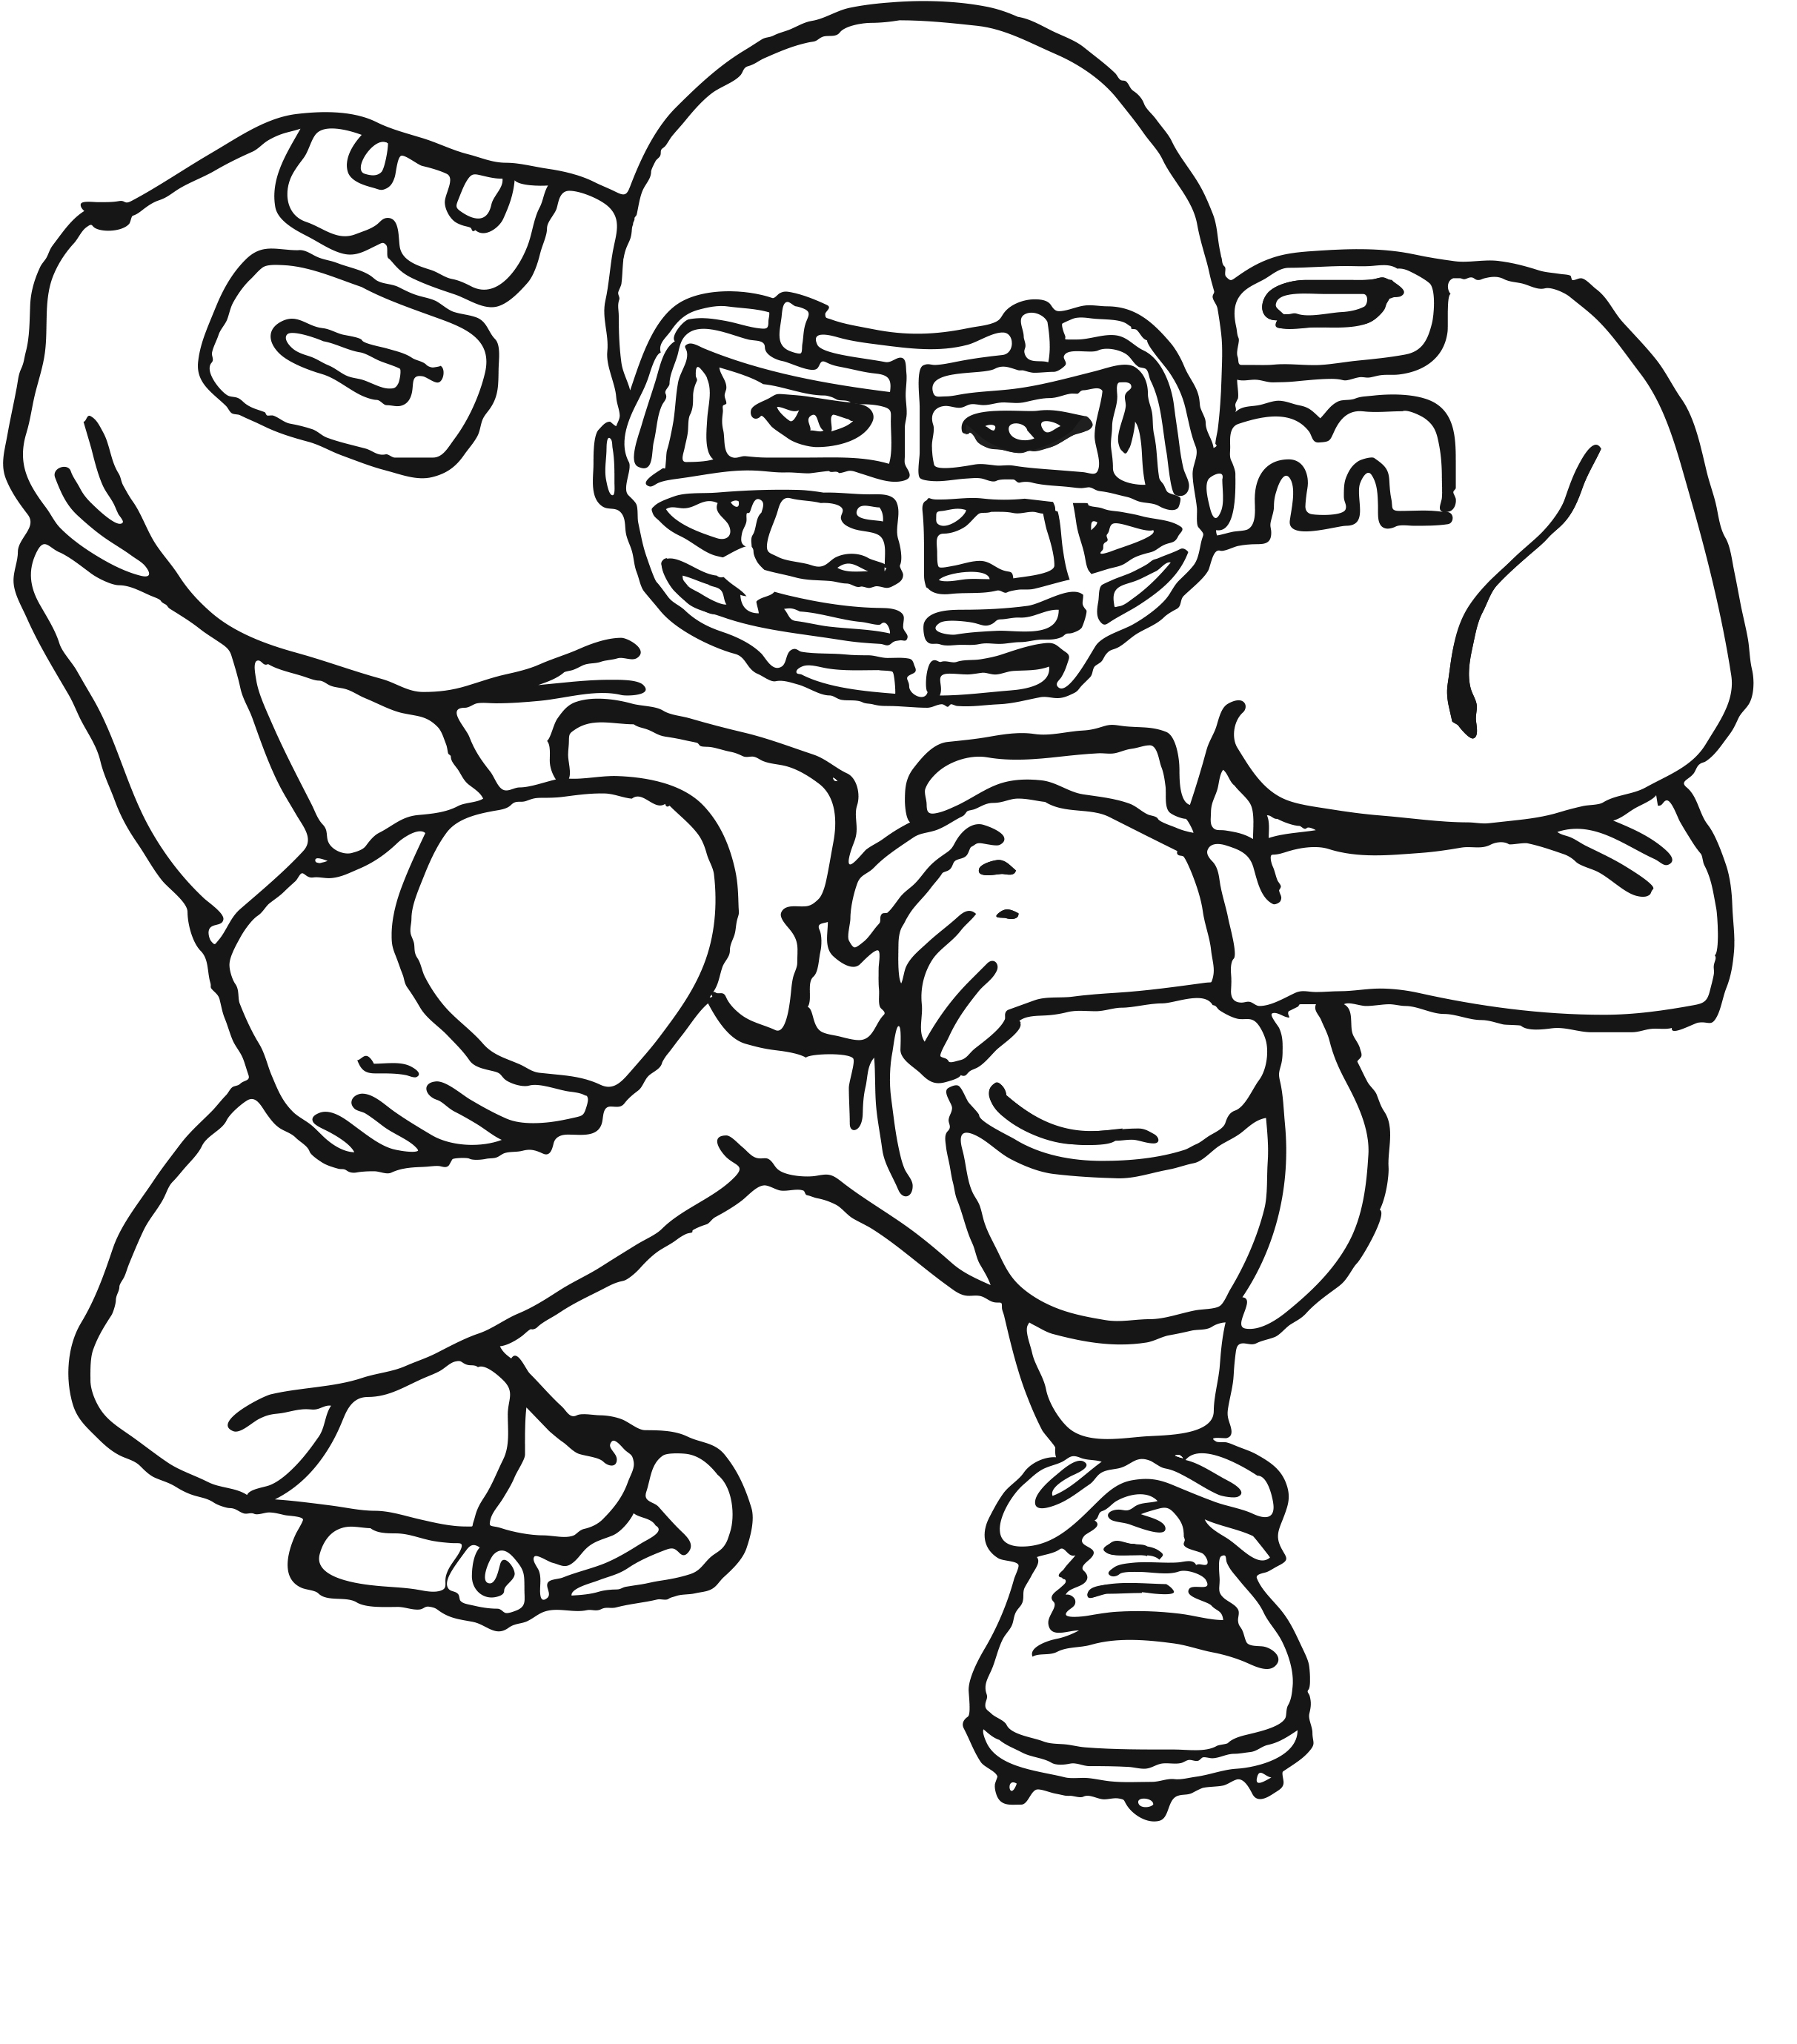 soccer pictures to color soccer ball coloring page for kids kidspressmagazinecom color to pictures soccer